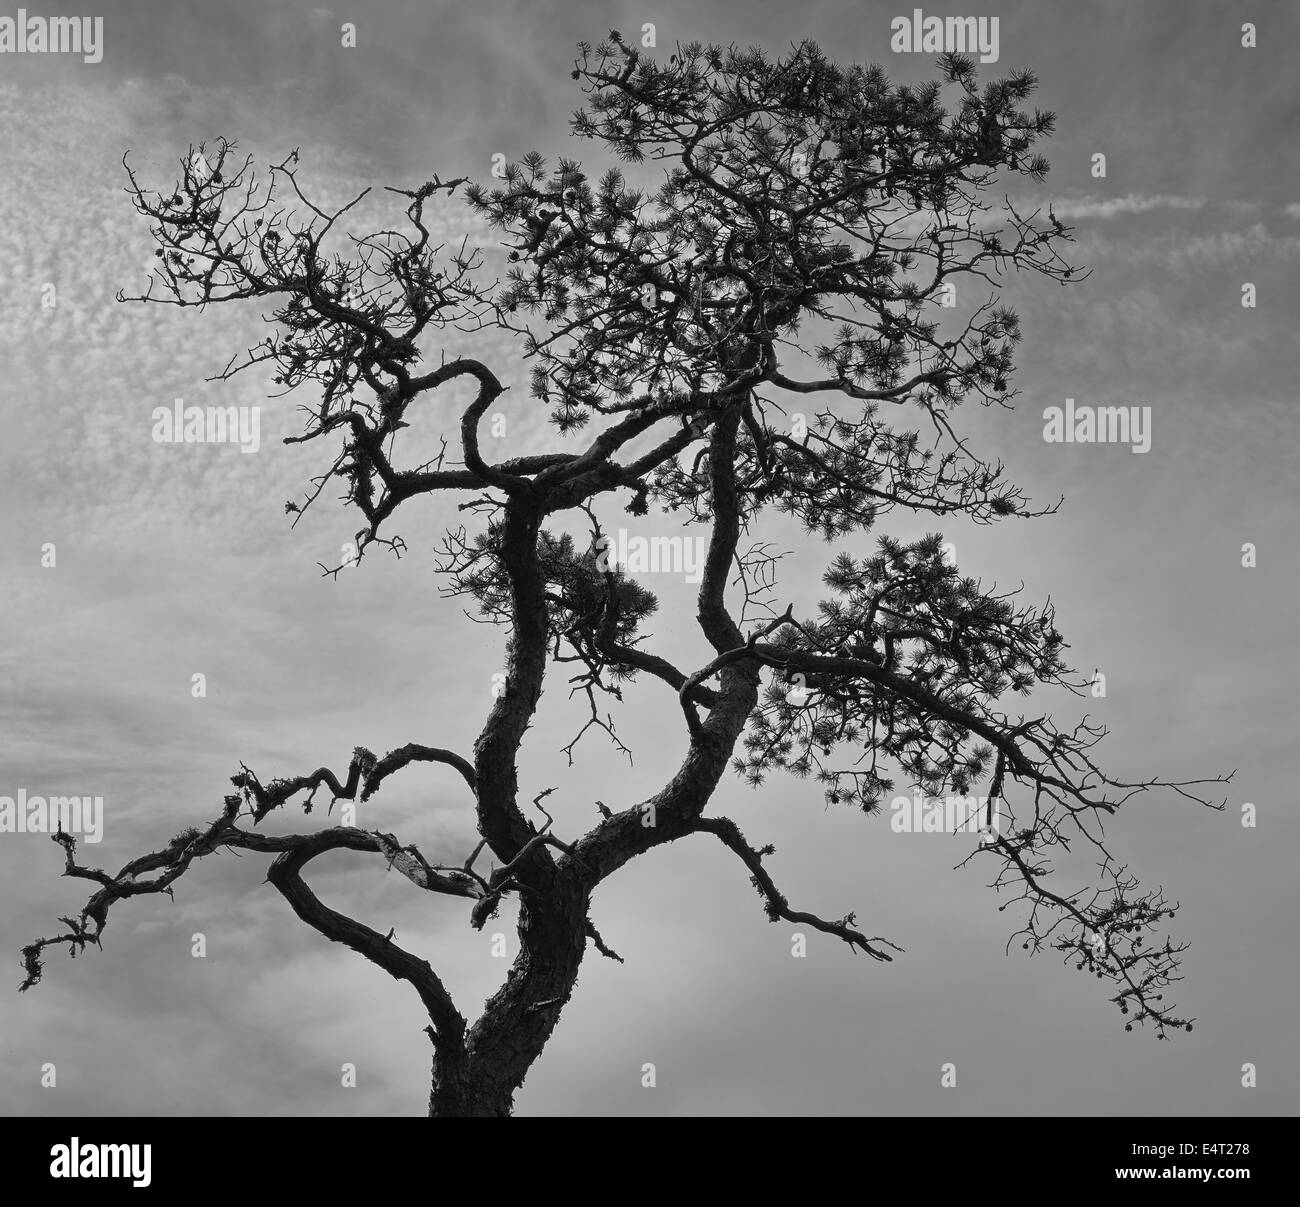 Stunted pine and cloudy sky, black and white image, horizon format - Stock Image